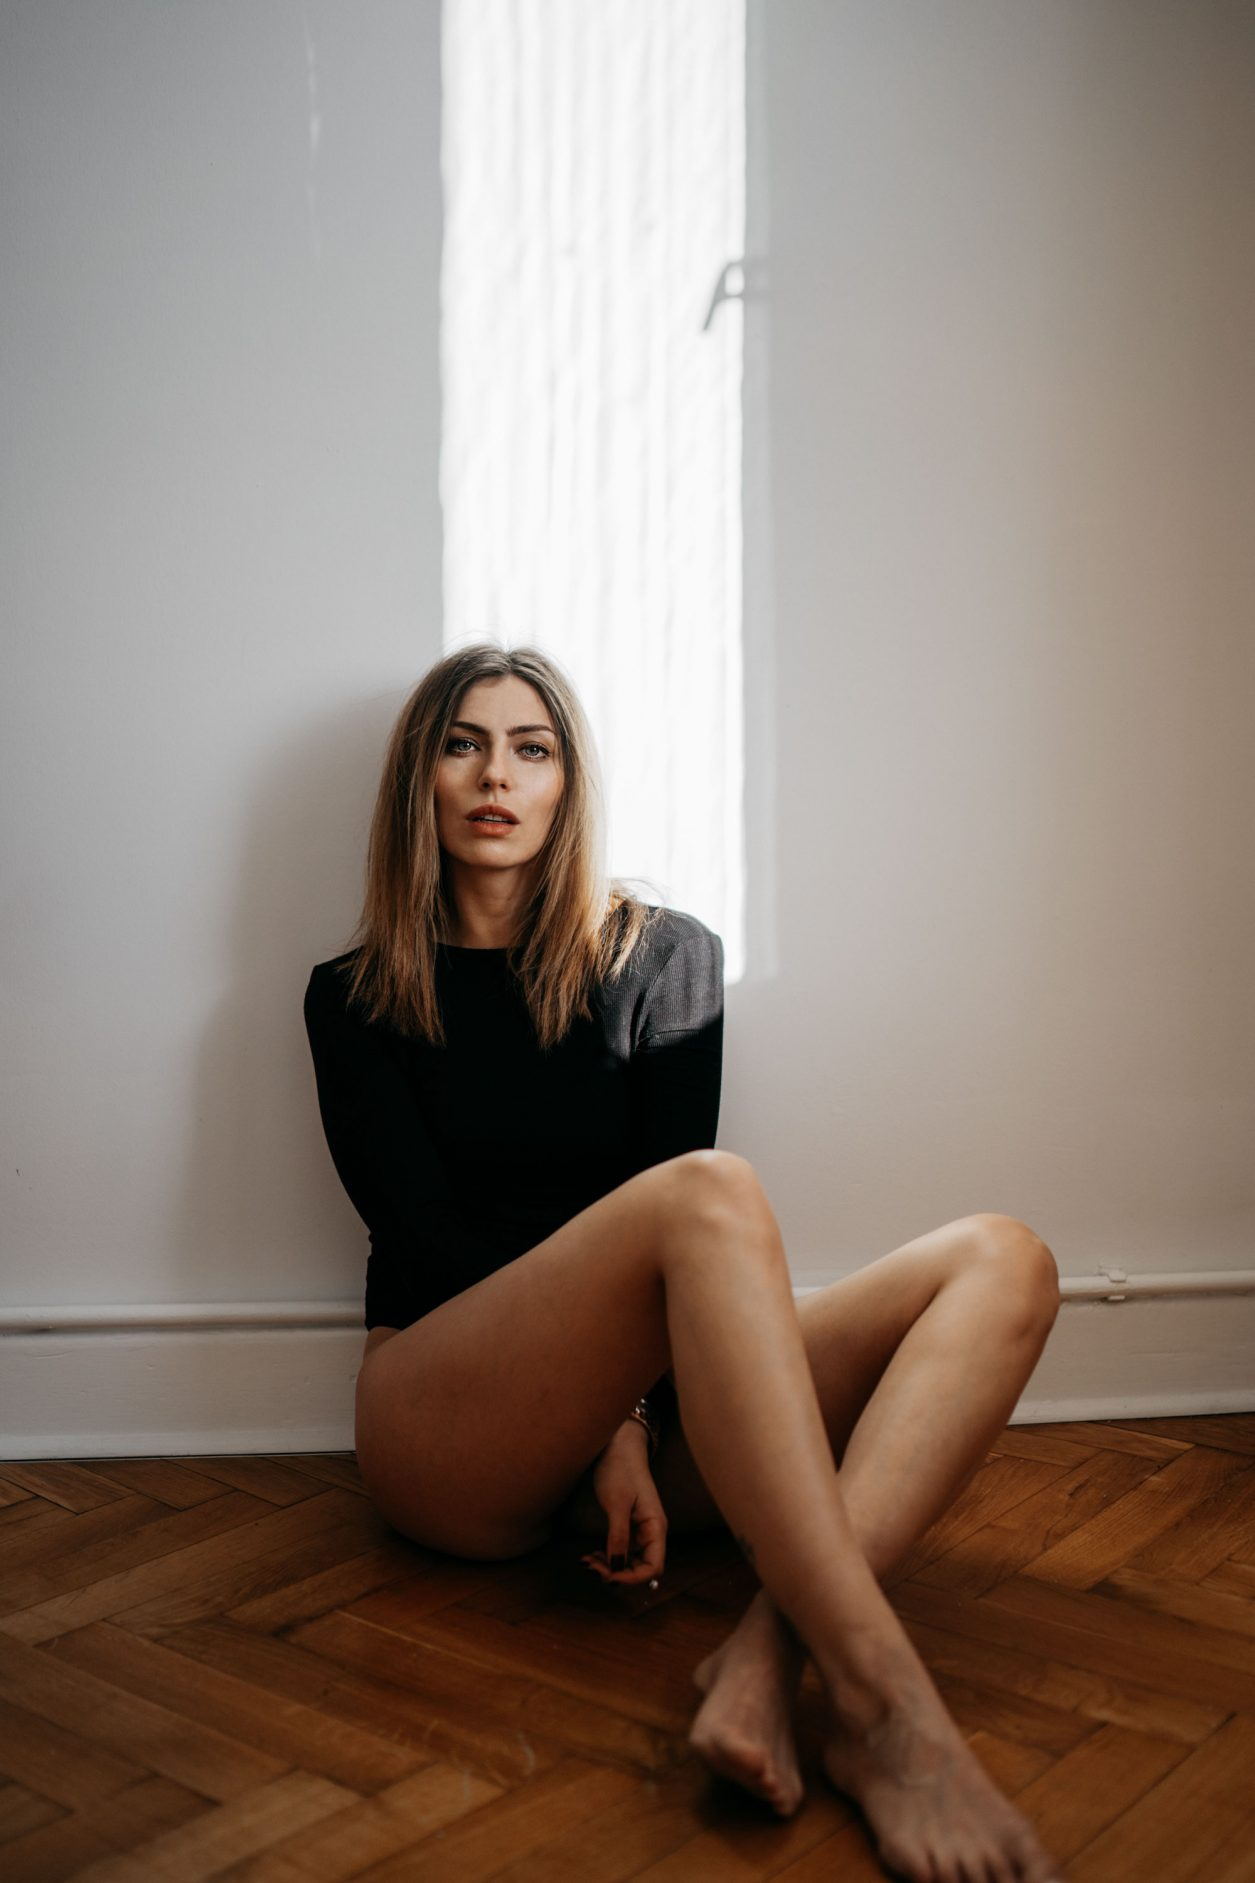 Masha Sedgwick | simple and clean editorial | studio | indoor | light | aesthetic